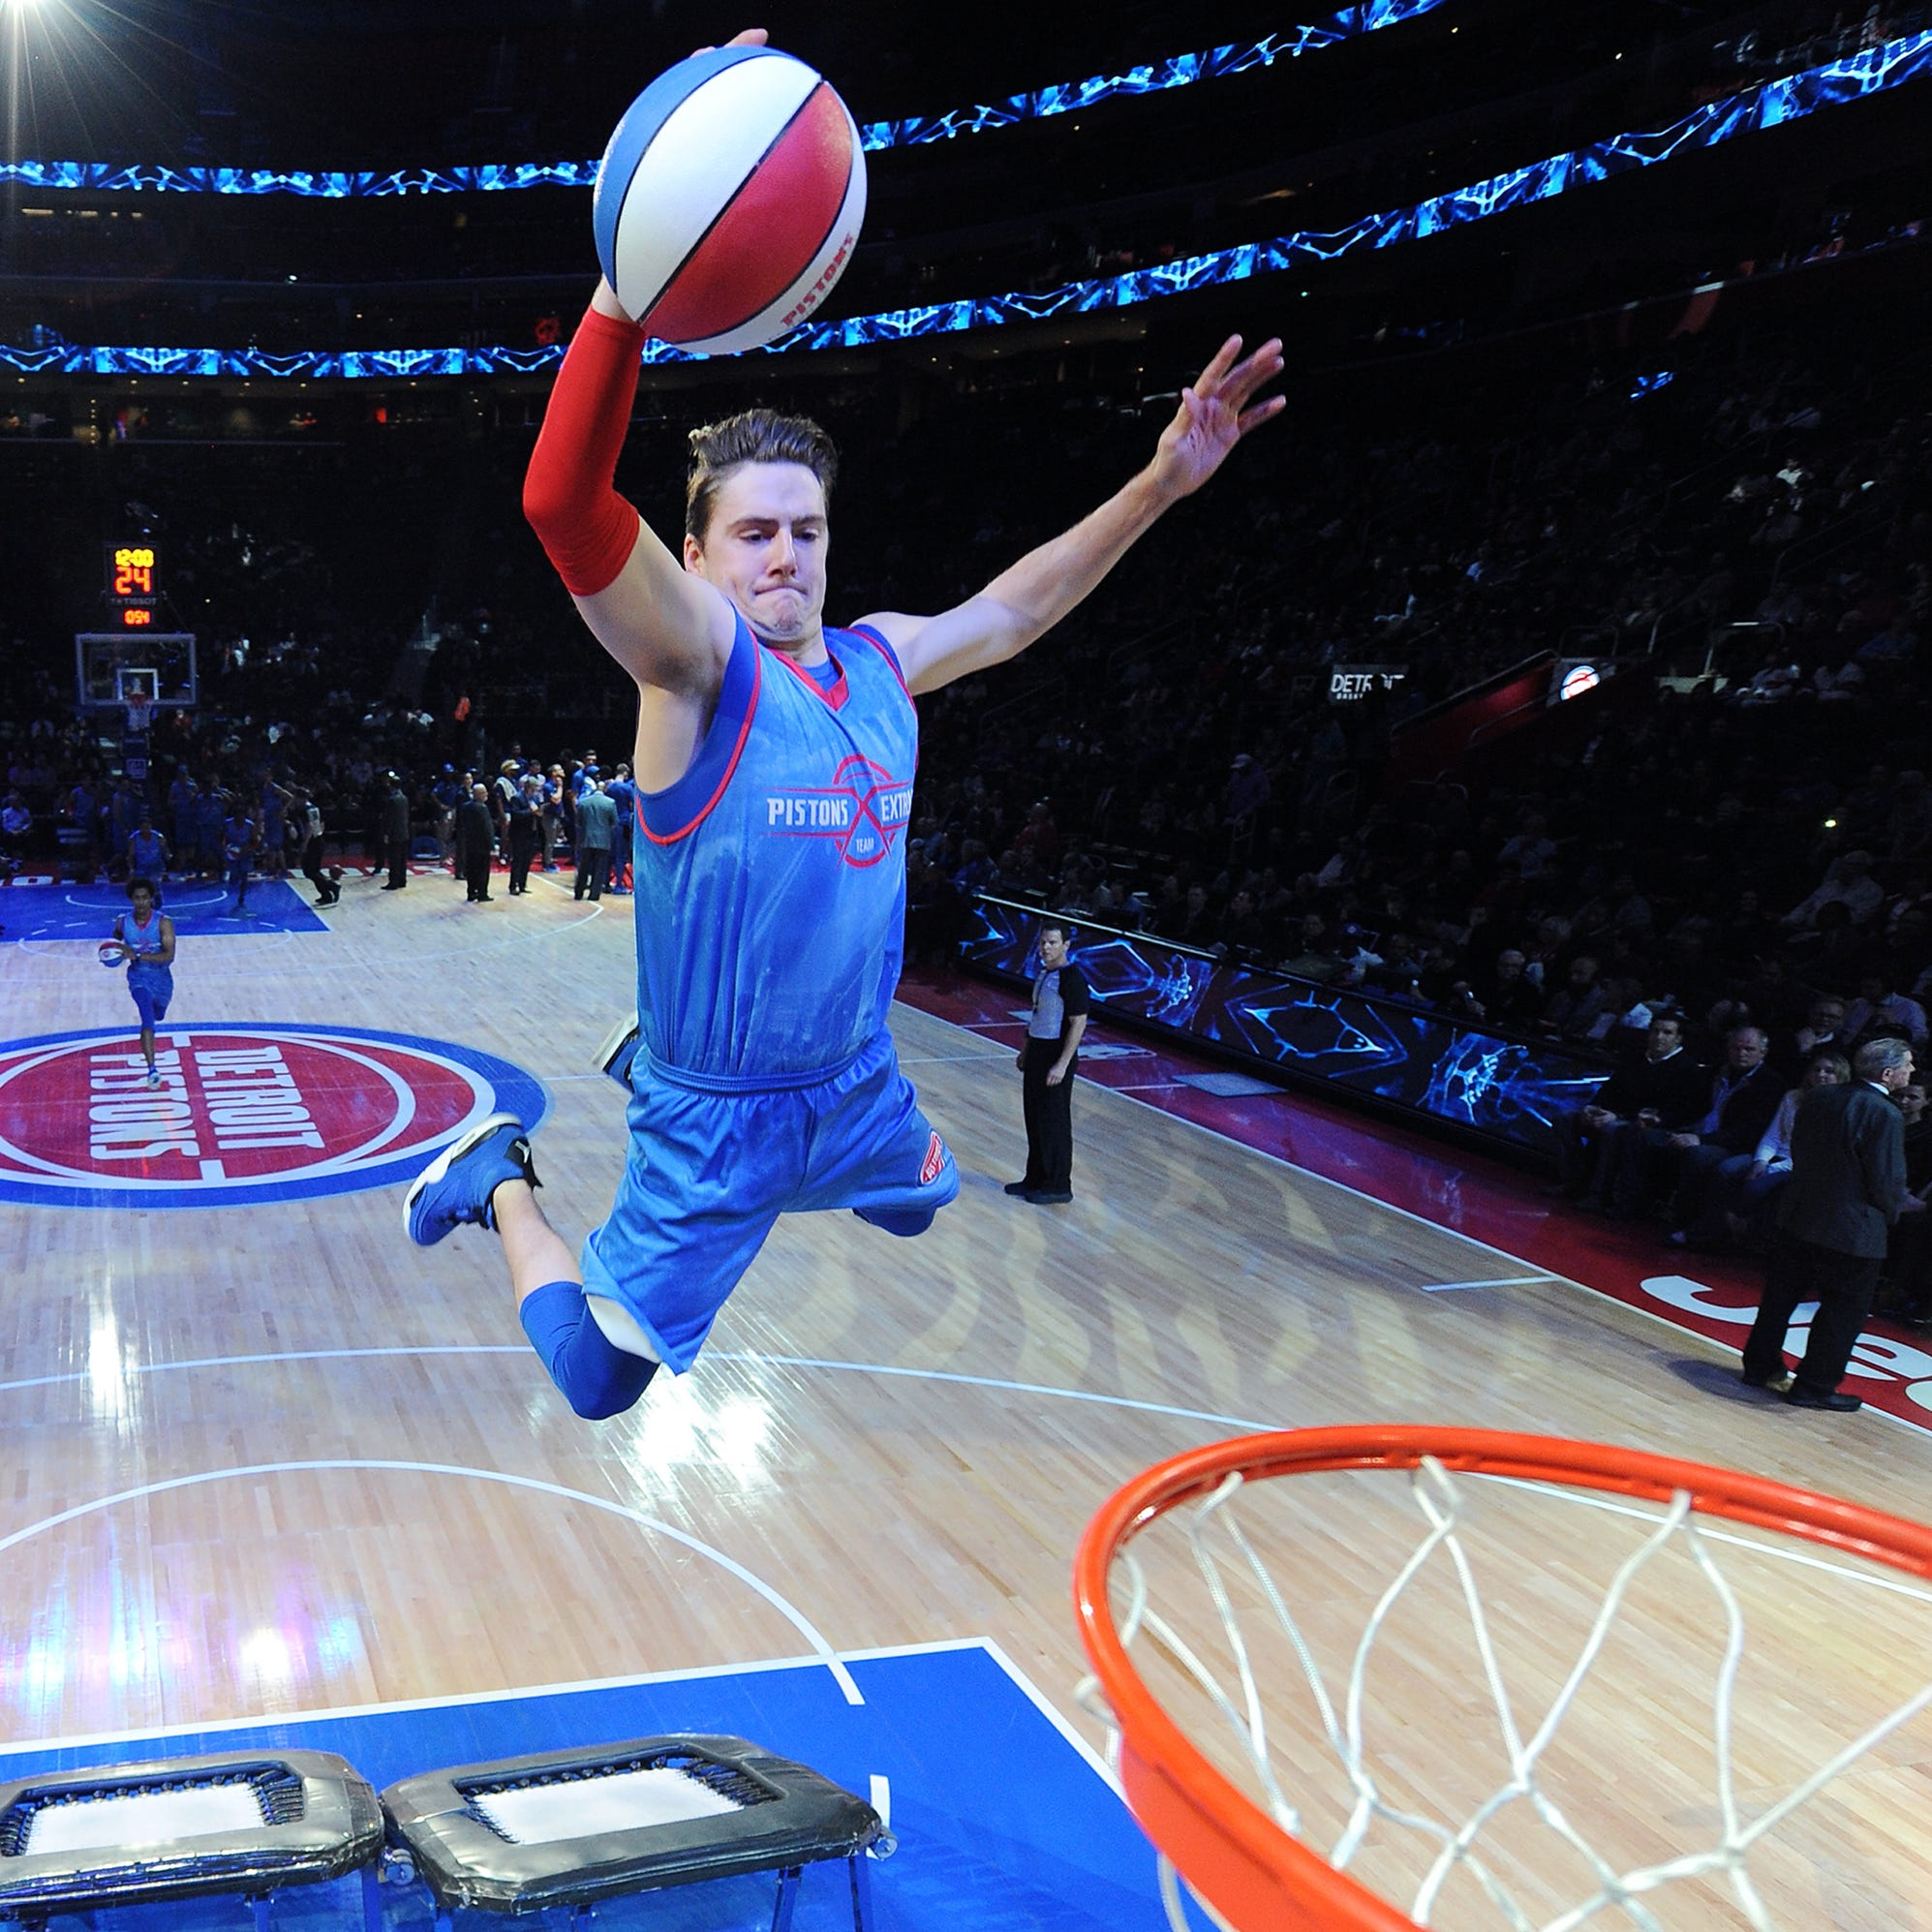 Showtime: On-court action only part of Pistons game nights